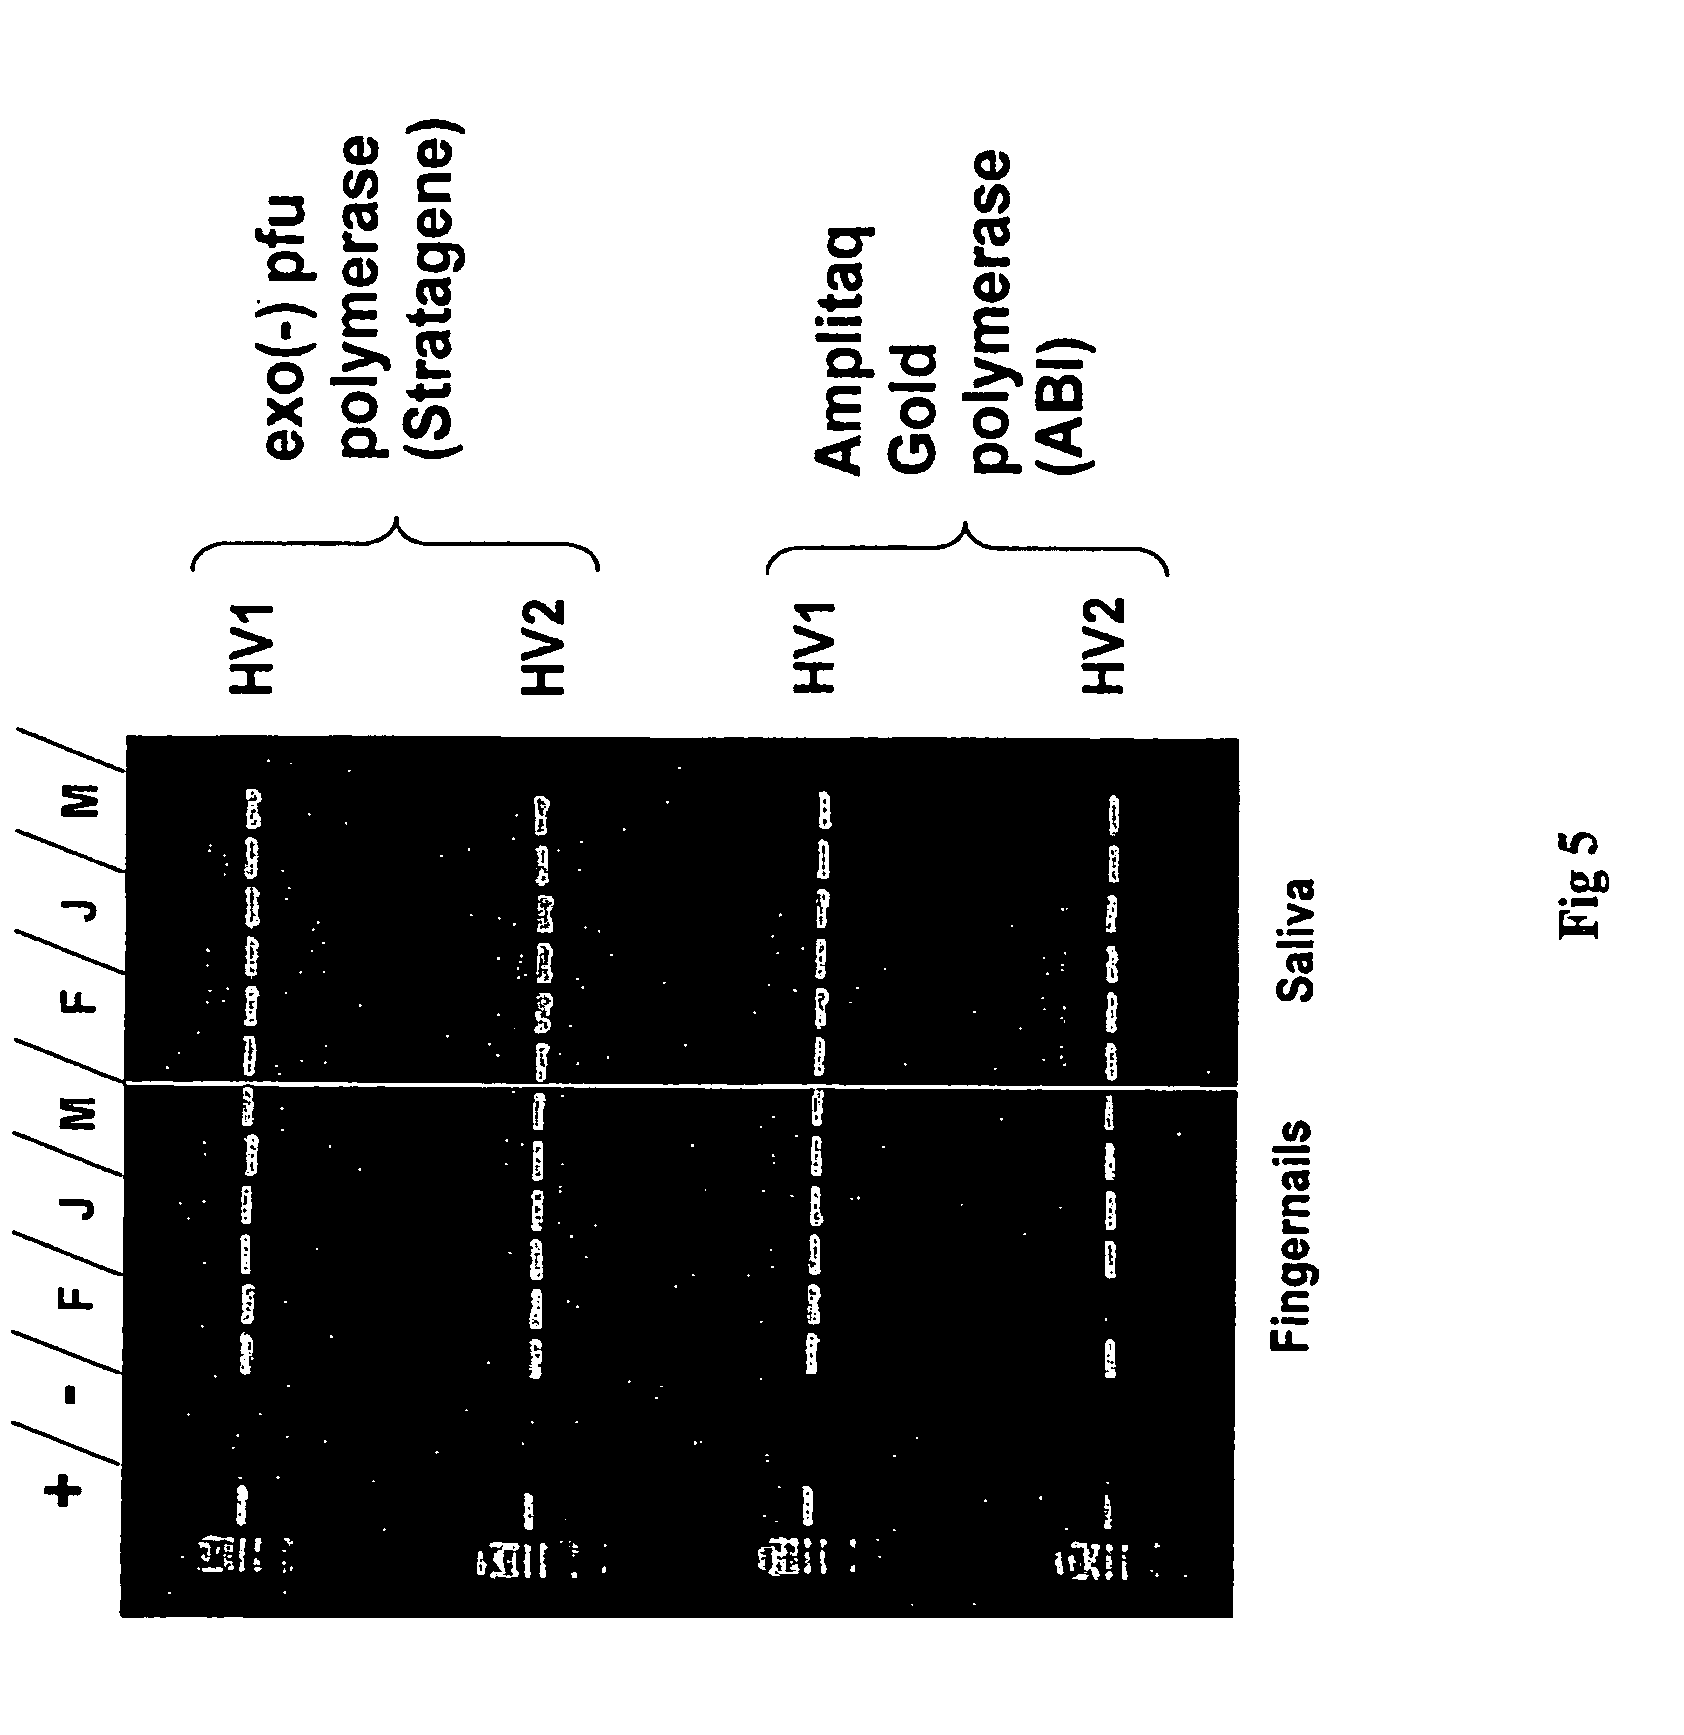 an analysis of gene patenting in the dna of gmos The wish to analyze and share such an important issue is at the origin of this   cisgenic techniques (genes introduced into the dna of the plant come from the  same  on the other hand, in the case of gmos, legal patent protection  prevents.